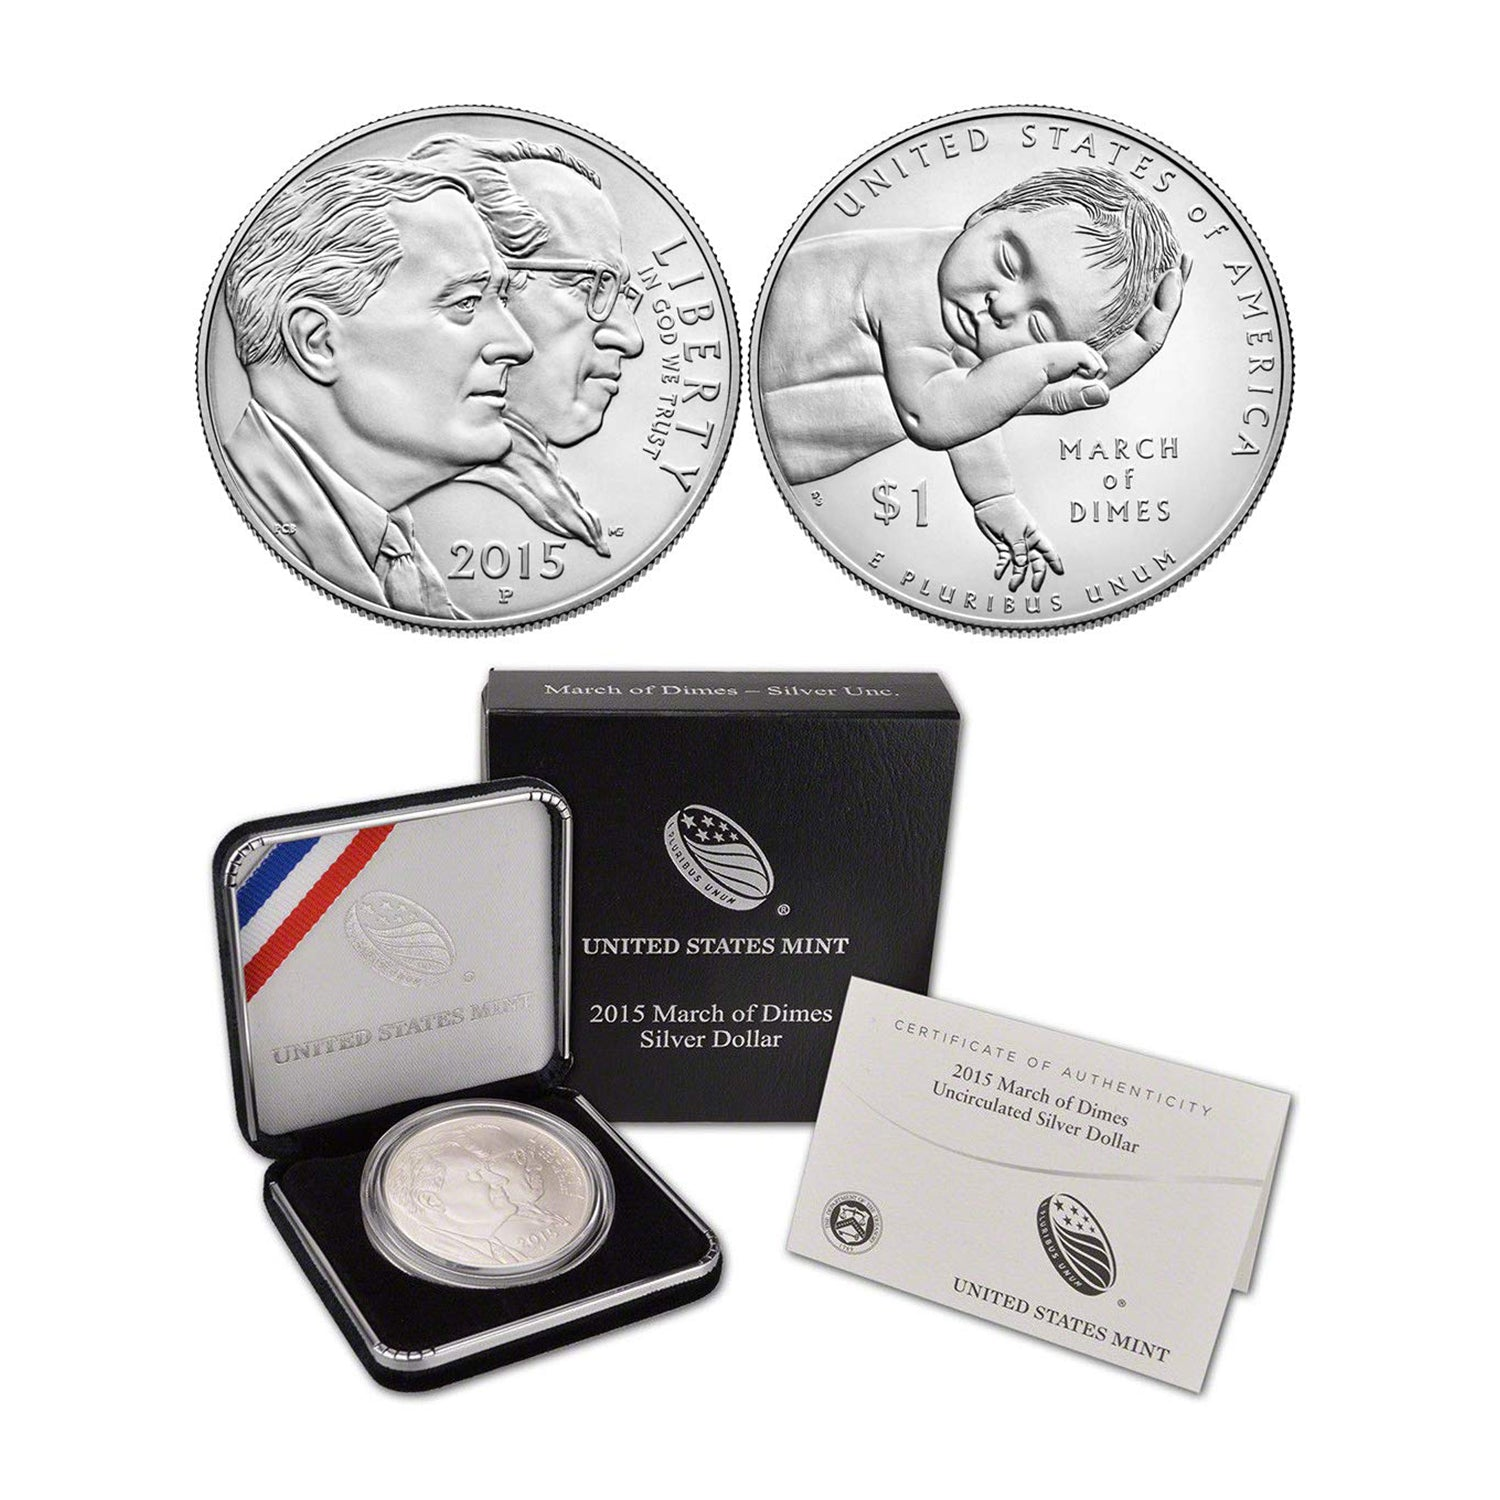 2015-P March of Dimes Commemorative Silver Dollar Mint State